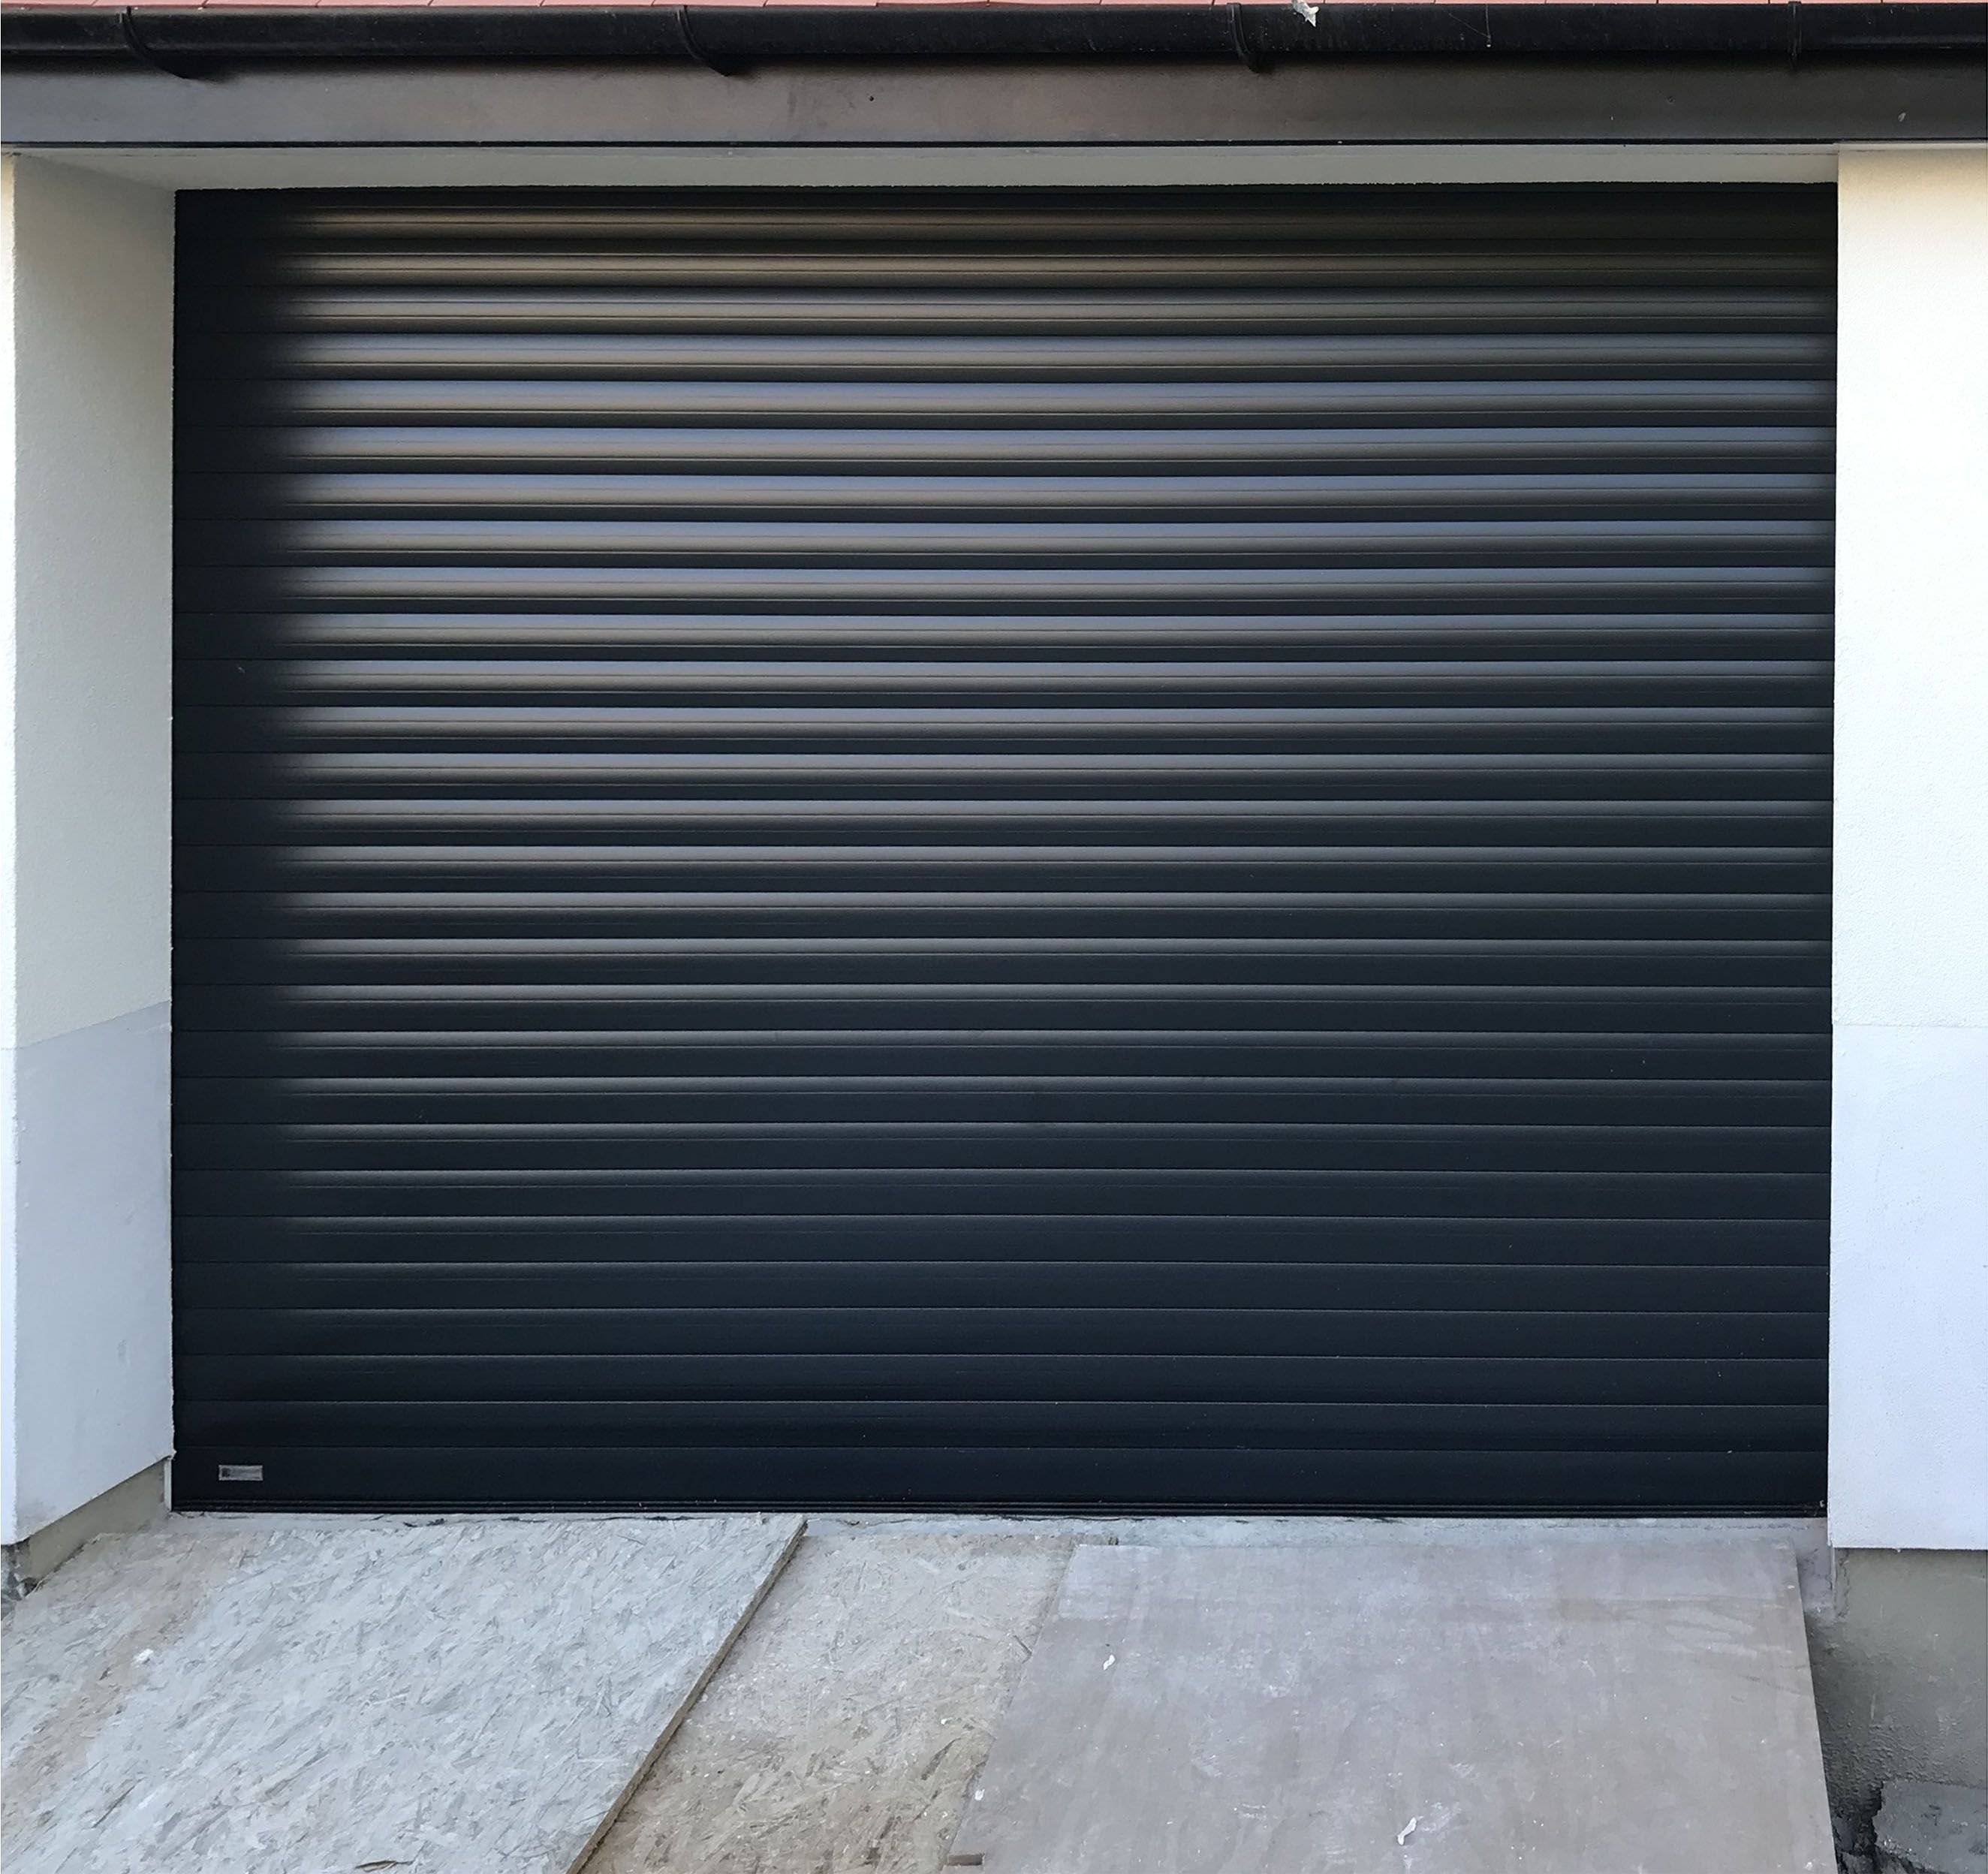 Sws Seceuroglide Excel Roller Garage Door Finished In Black Grey Sectional Garage Doors Garage Doors Black And Grey